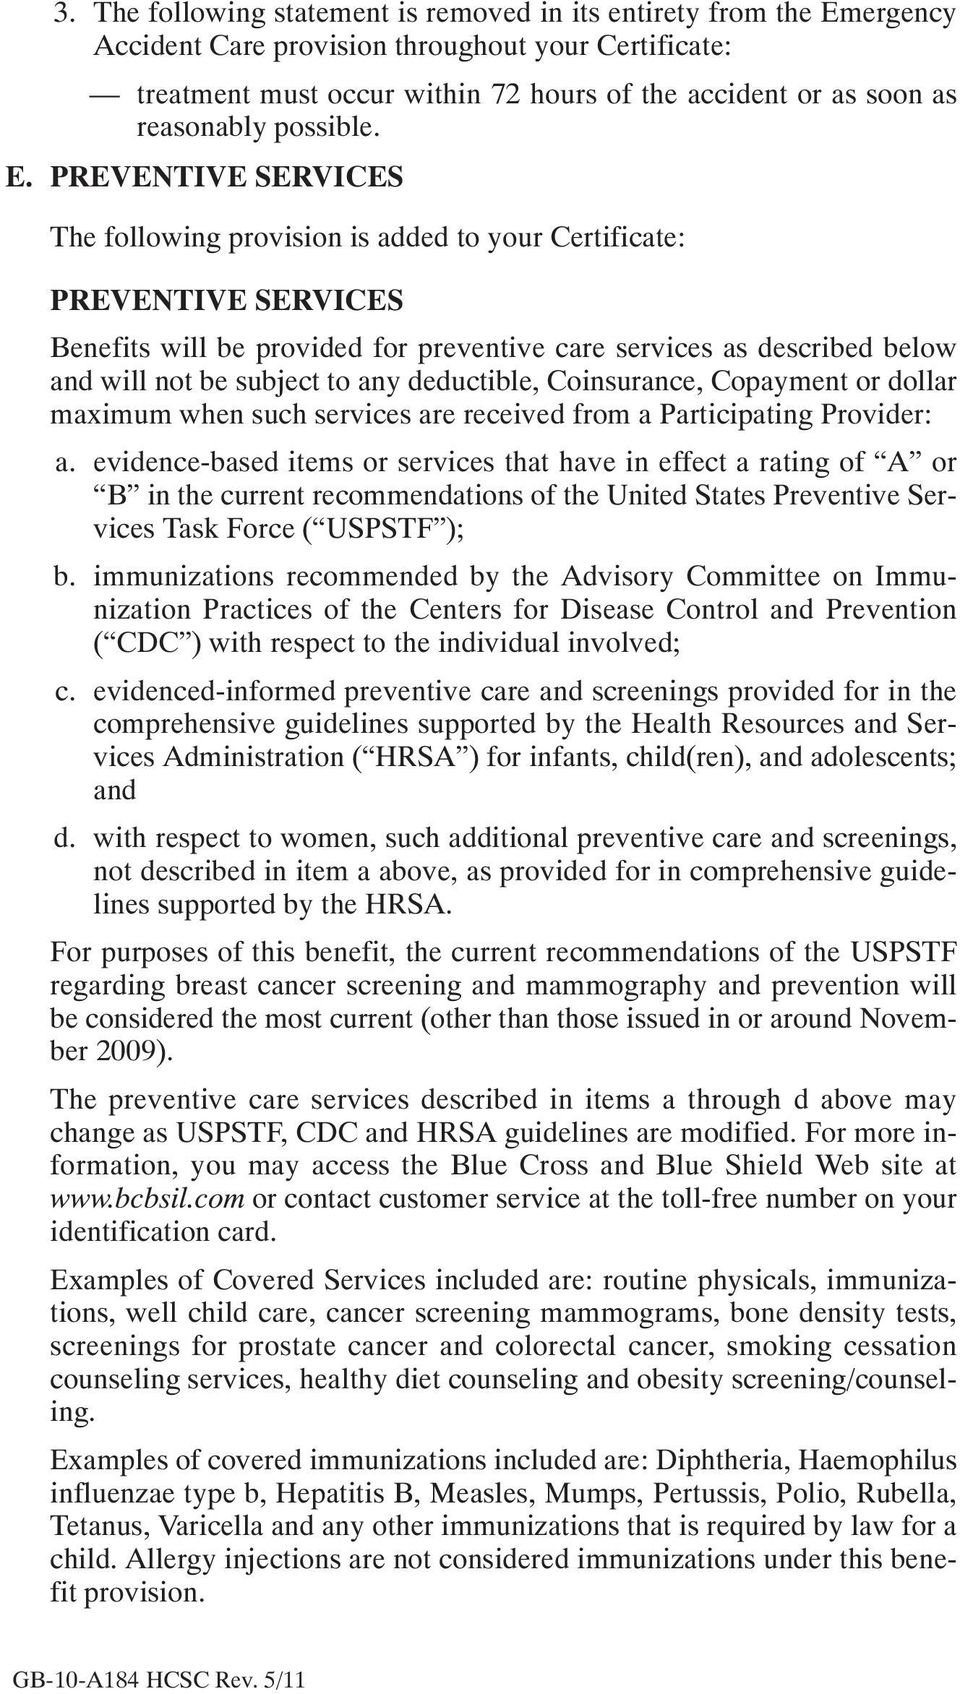 PREVENTIVE SERVICES The following provision is added to your Certificate: PREVENTIVE SERVICES Benefits will be provided for preventive care services as described below and will not be subject to any